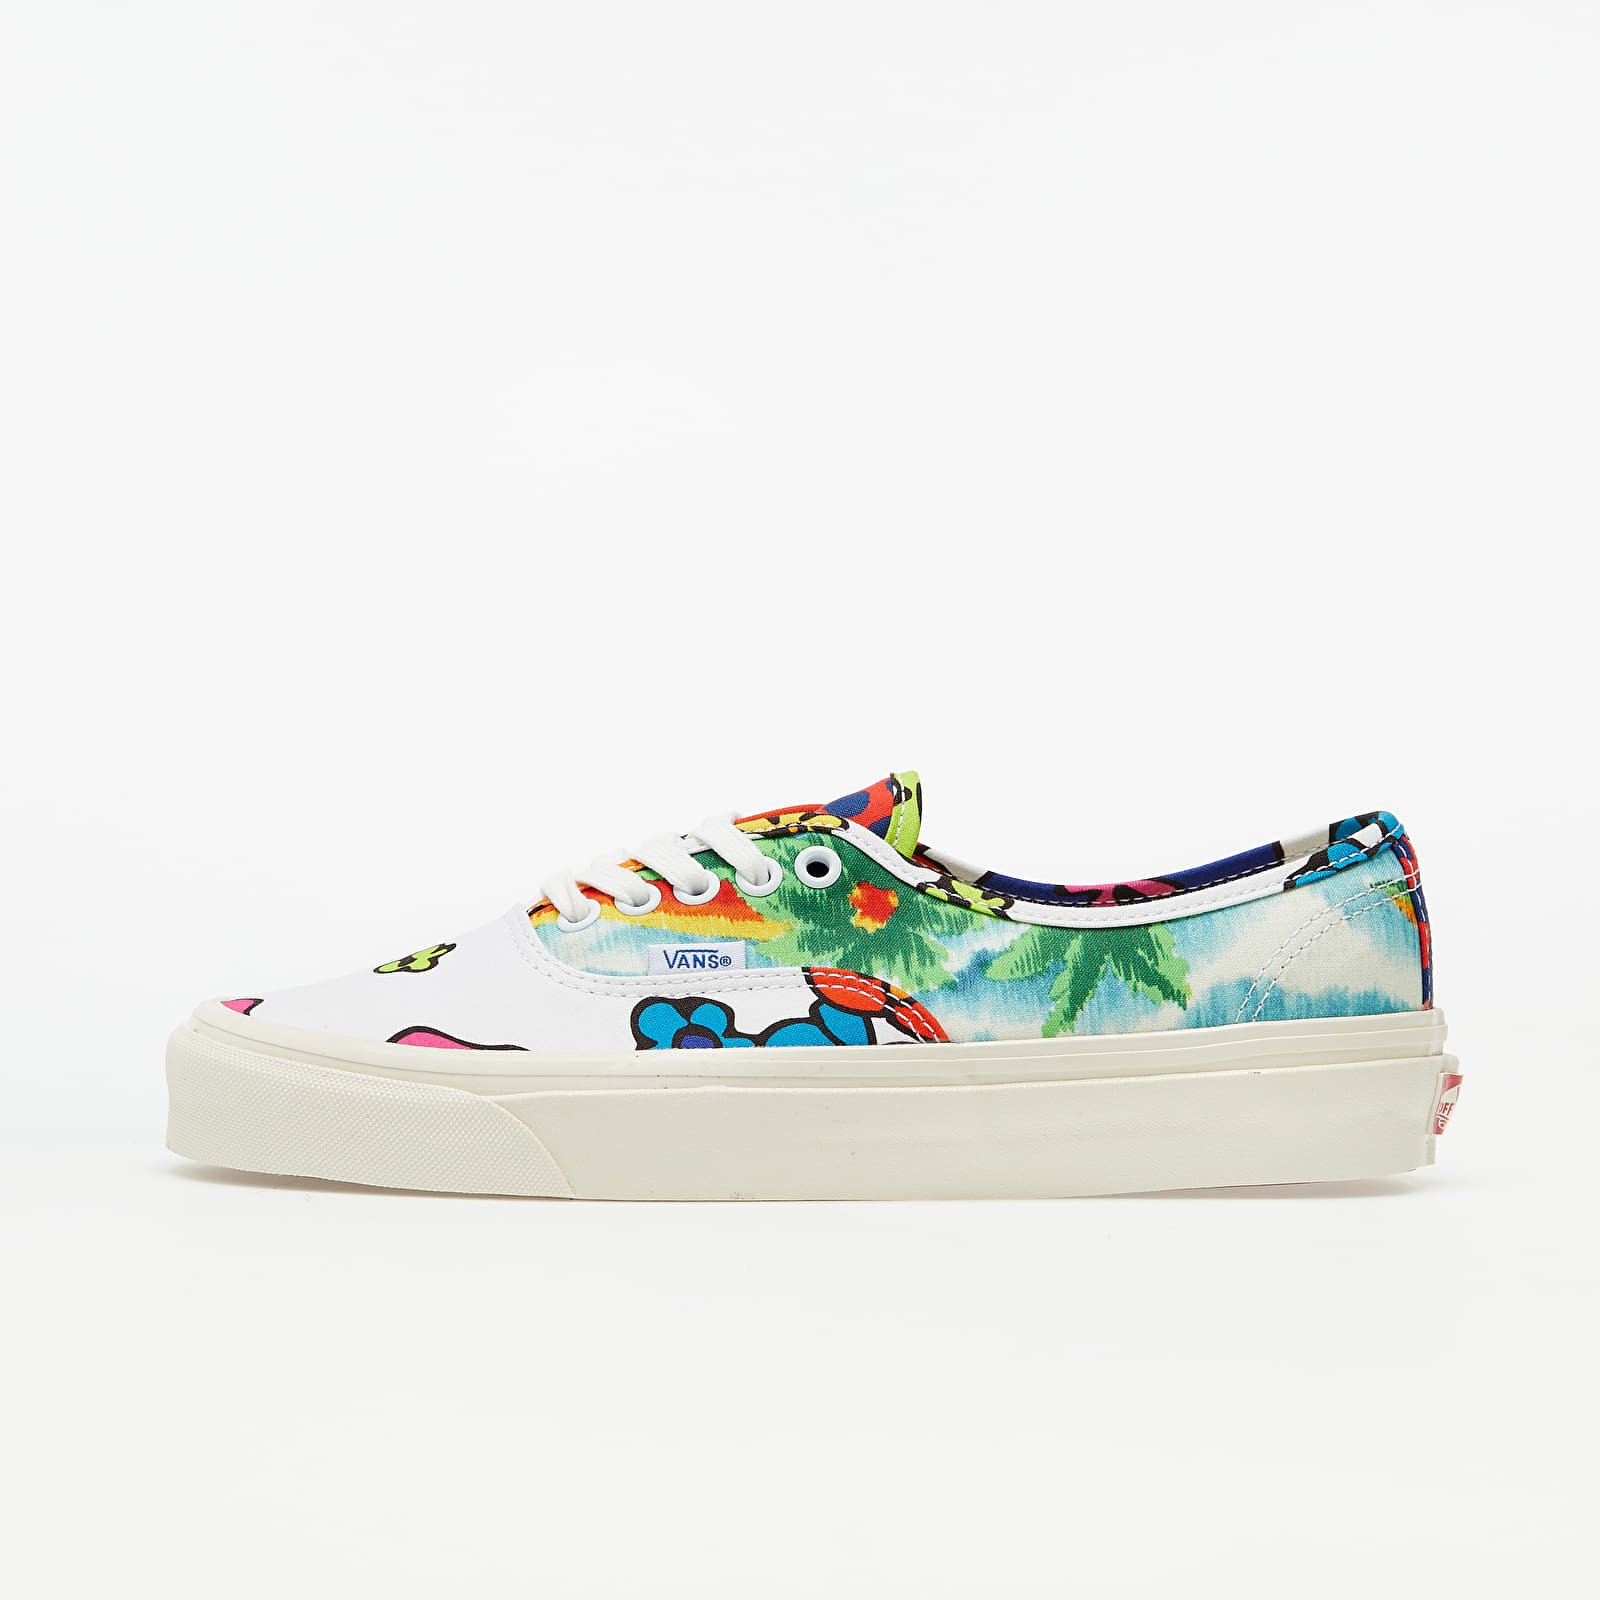 Chaussures et baskets homme Vans Authentic 44 DX (Anaheim Factory) Hoffman Fabrics/ Floral Mix